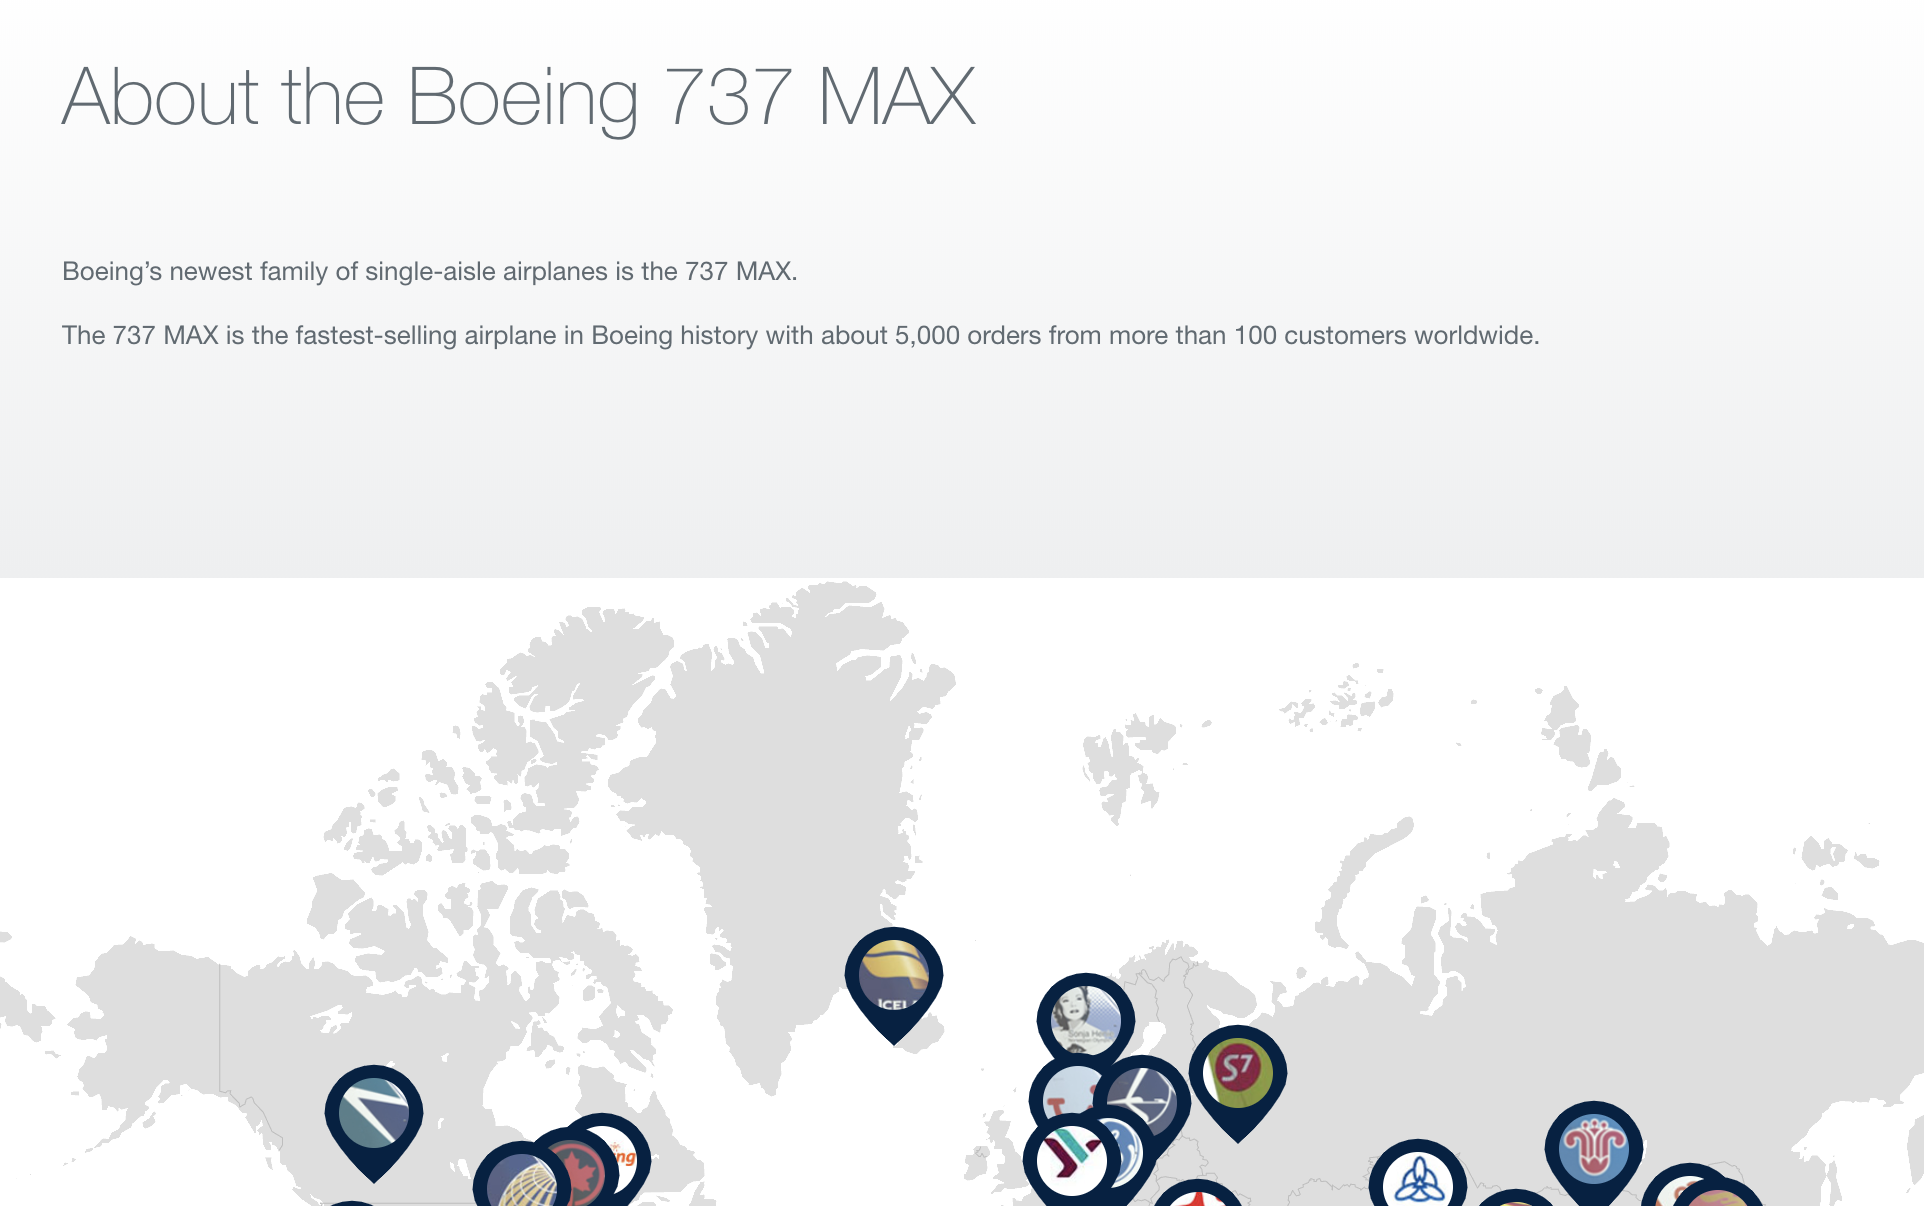 Boeing still publishing proud 737 Max text on its website.